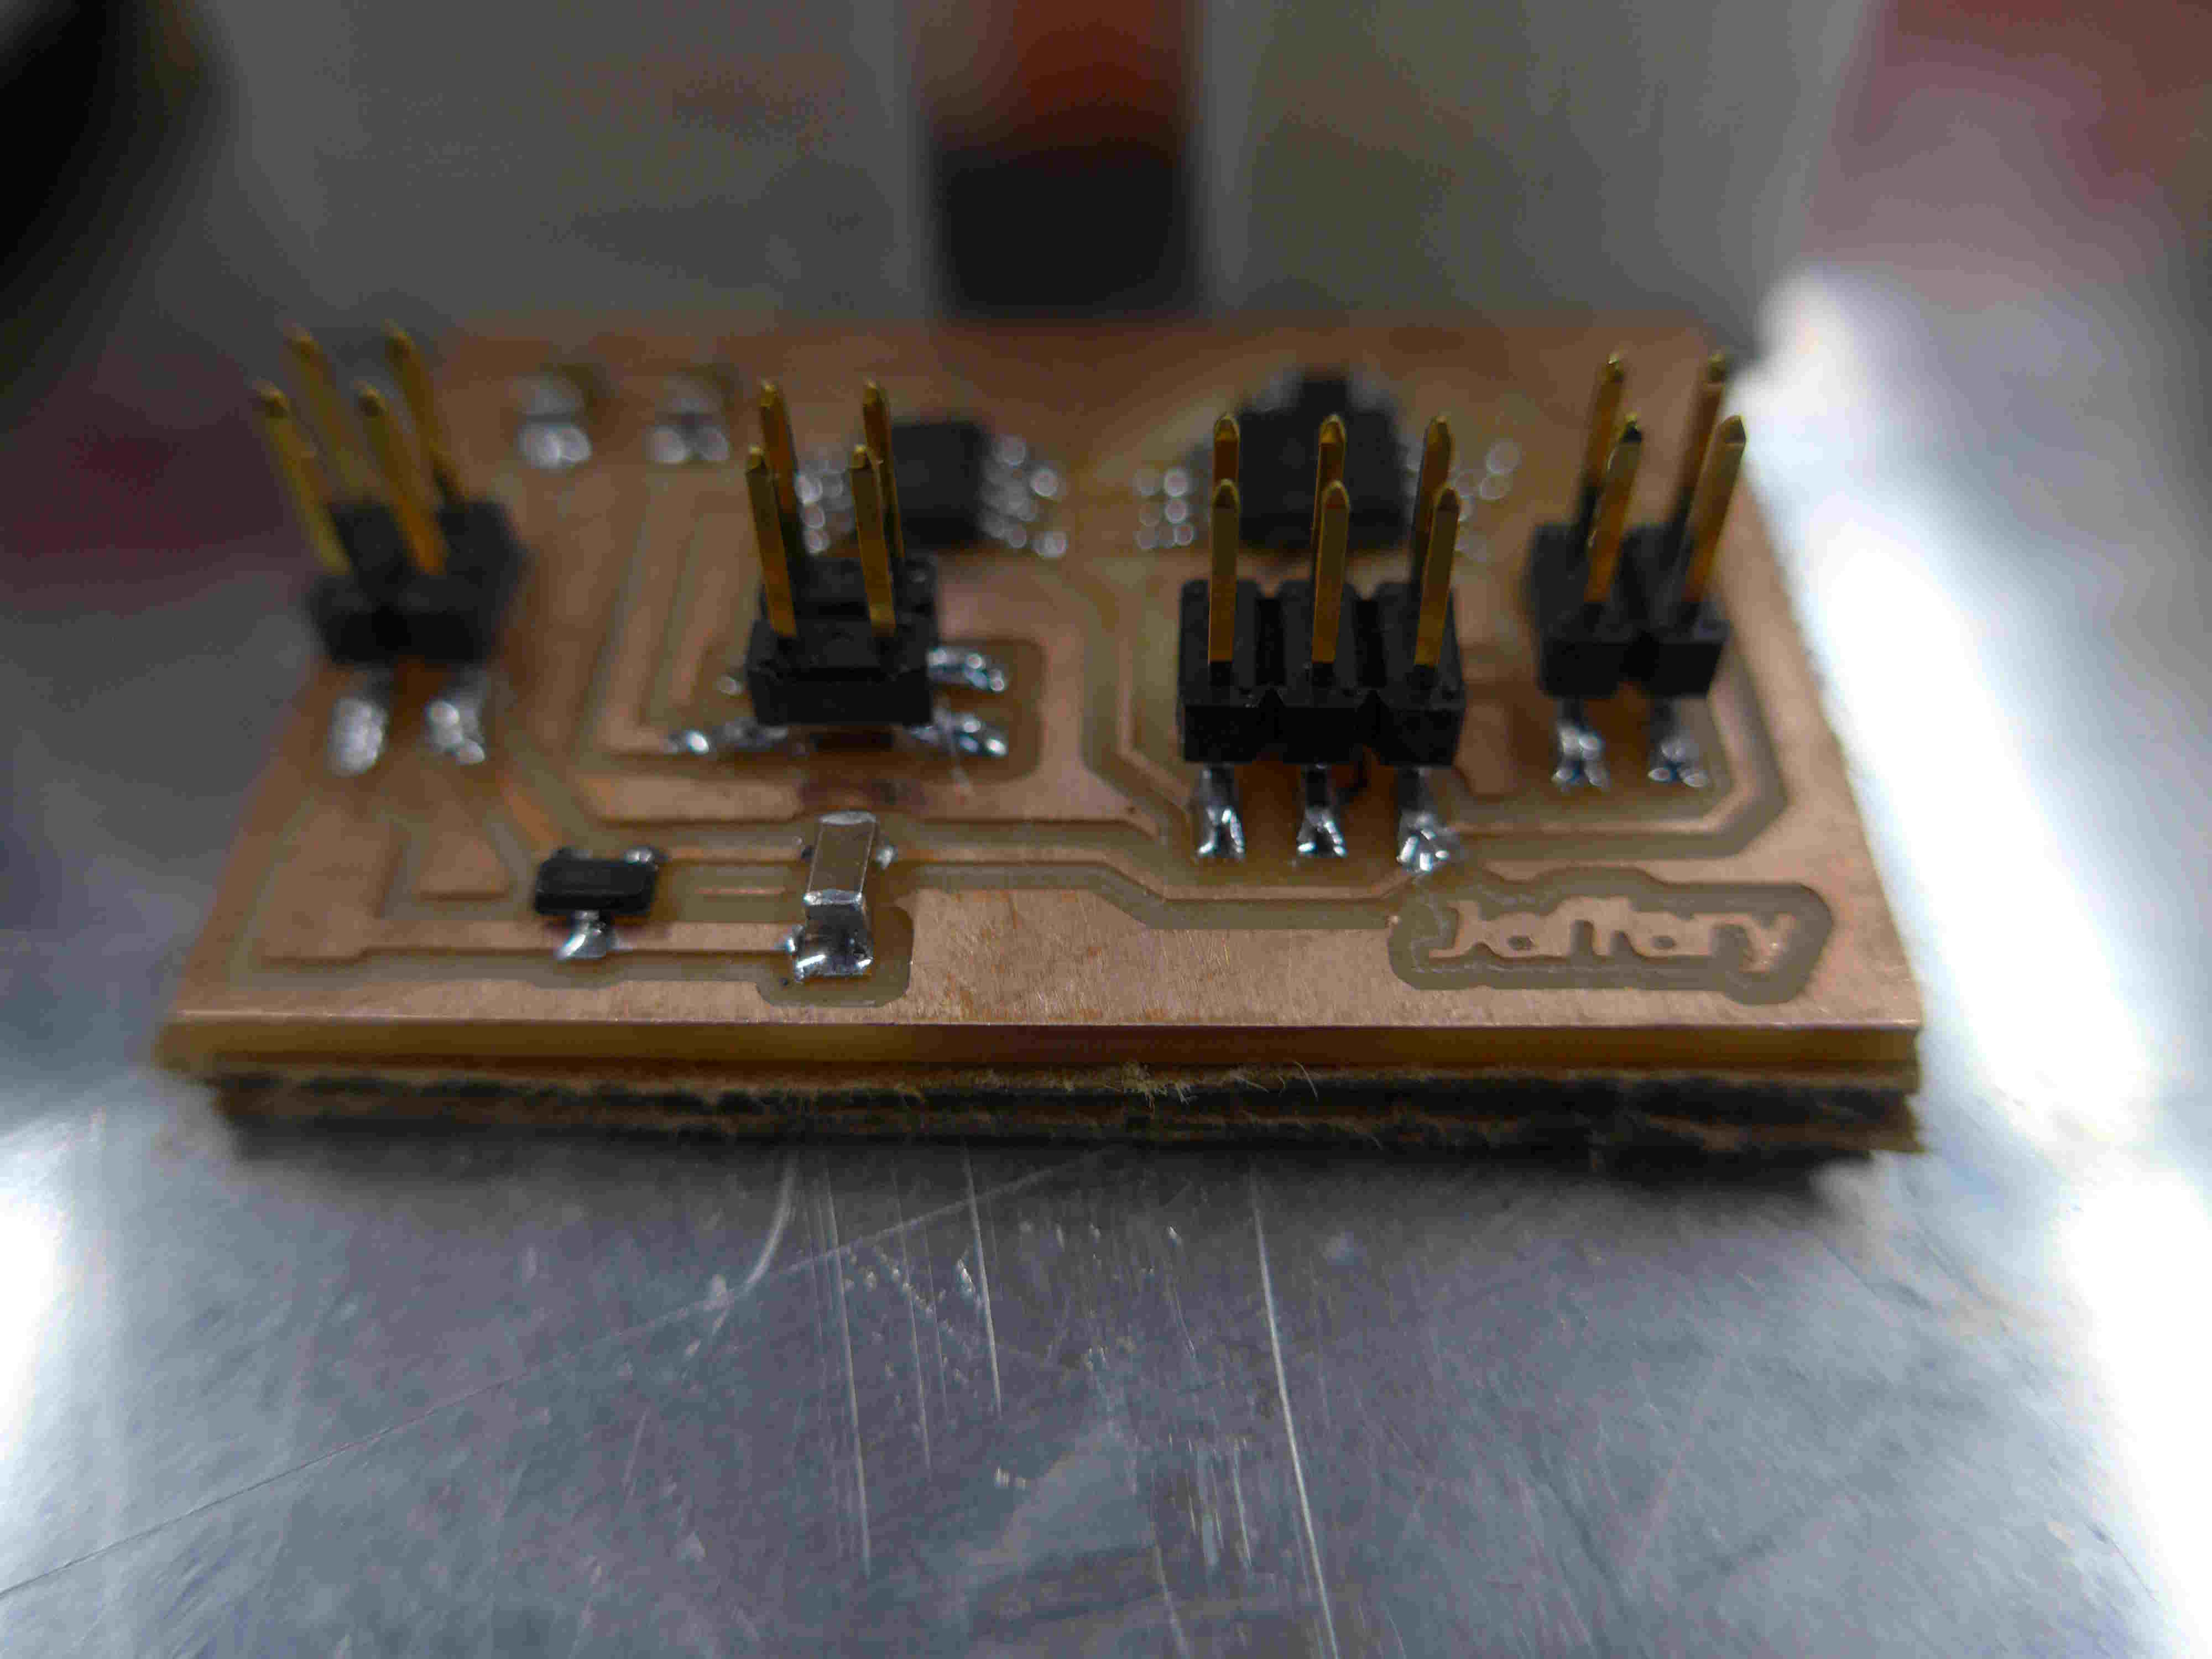 Circuit Board Under The Waterjet Ready To Be Sliced Pieces Jeffery Makes Almost Anything And Here Is Colletcion Of Boards All Attached